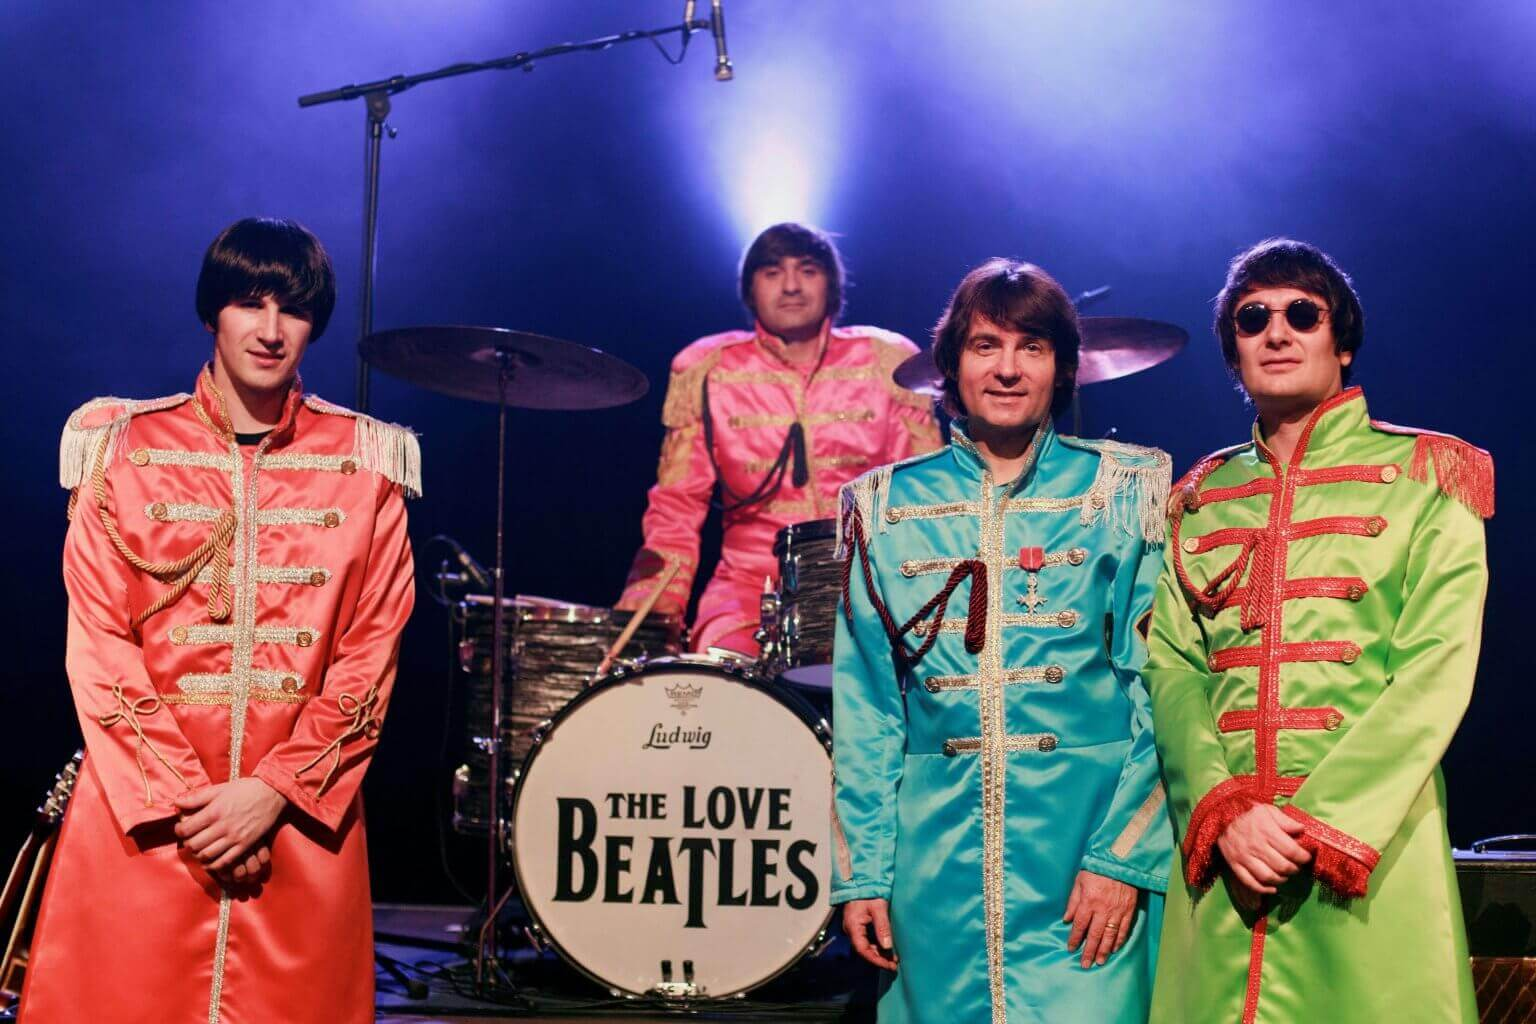 The Love Beatles en tenue d'époque (doc promo)